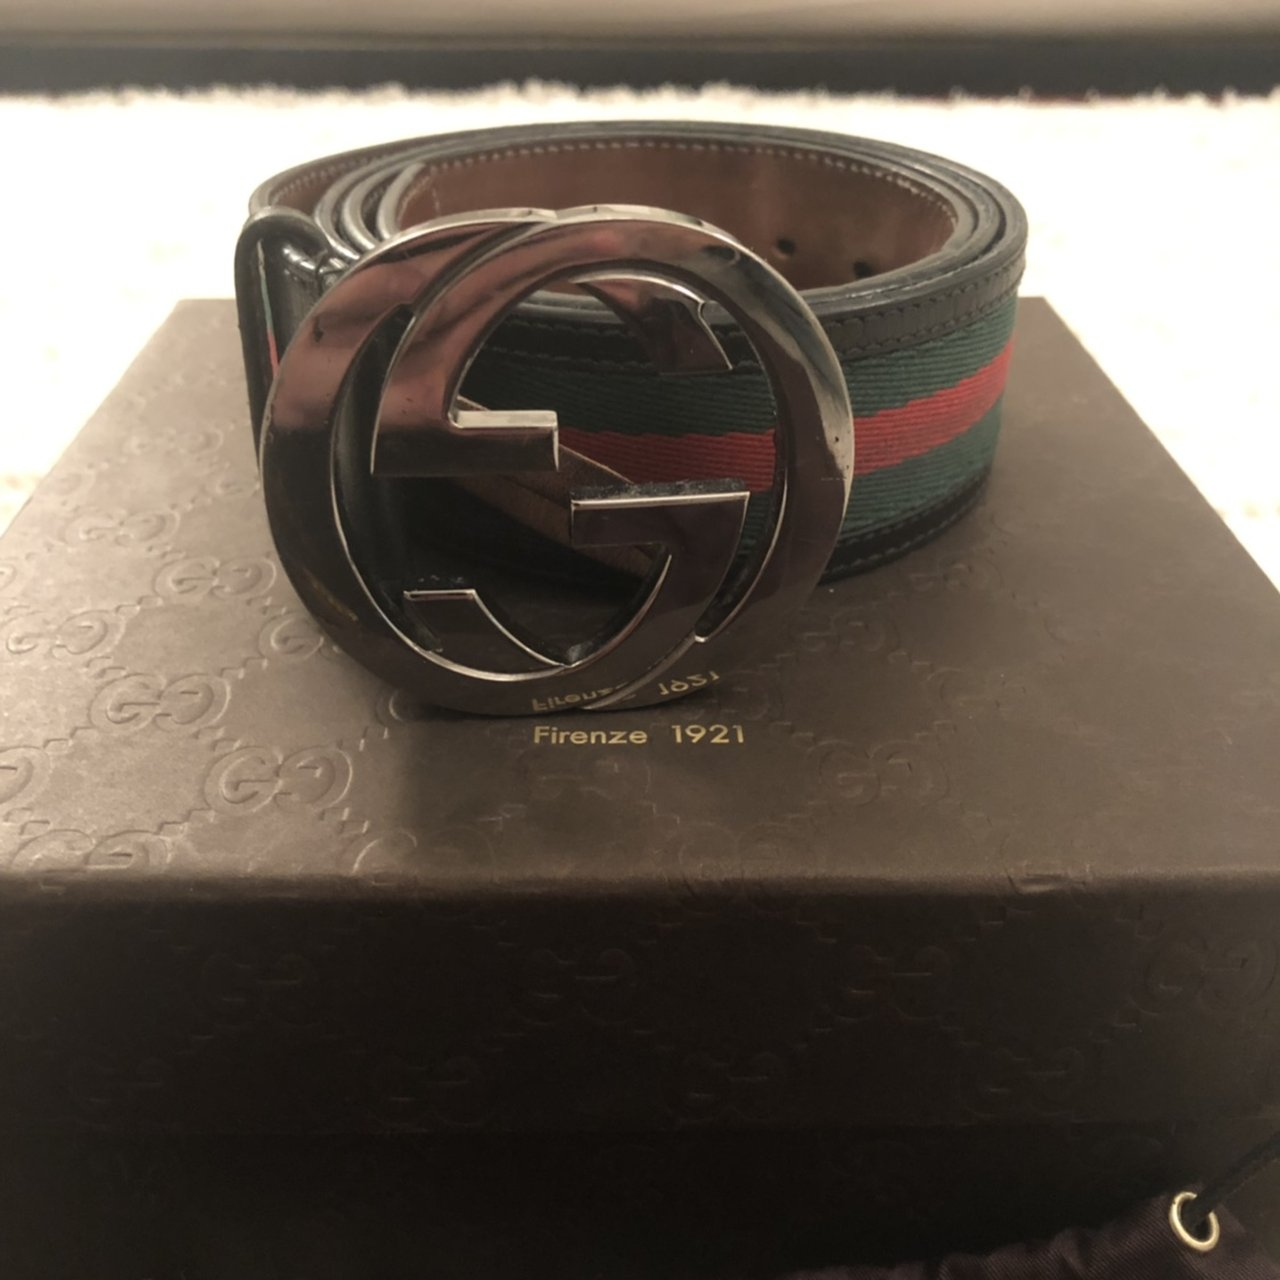 66c607a3151 Gucci Belt Size 95 Condition 8 10 New Price 280.-